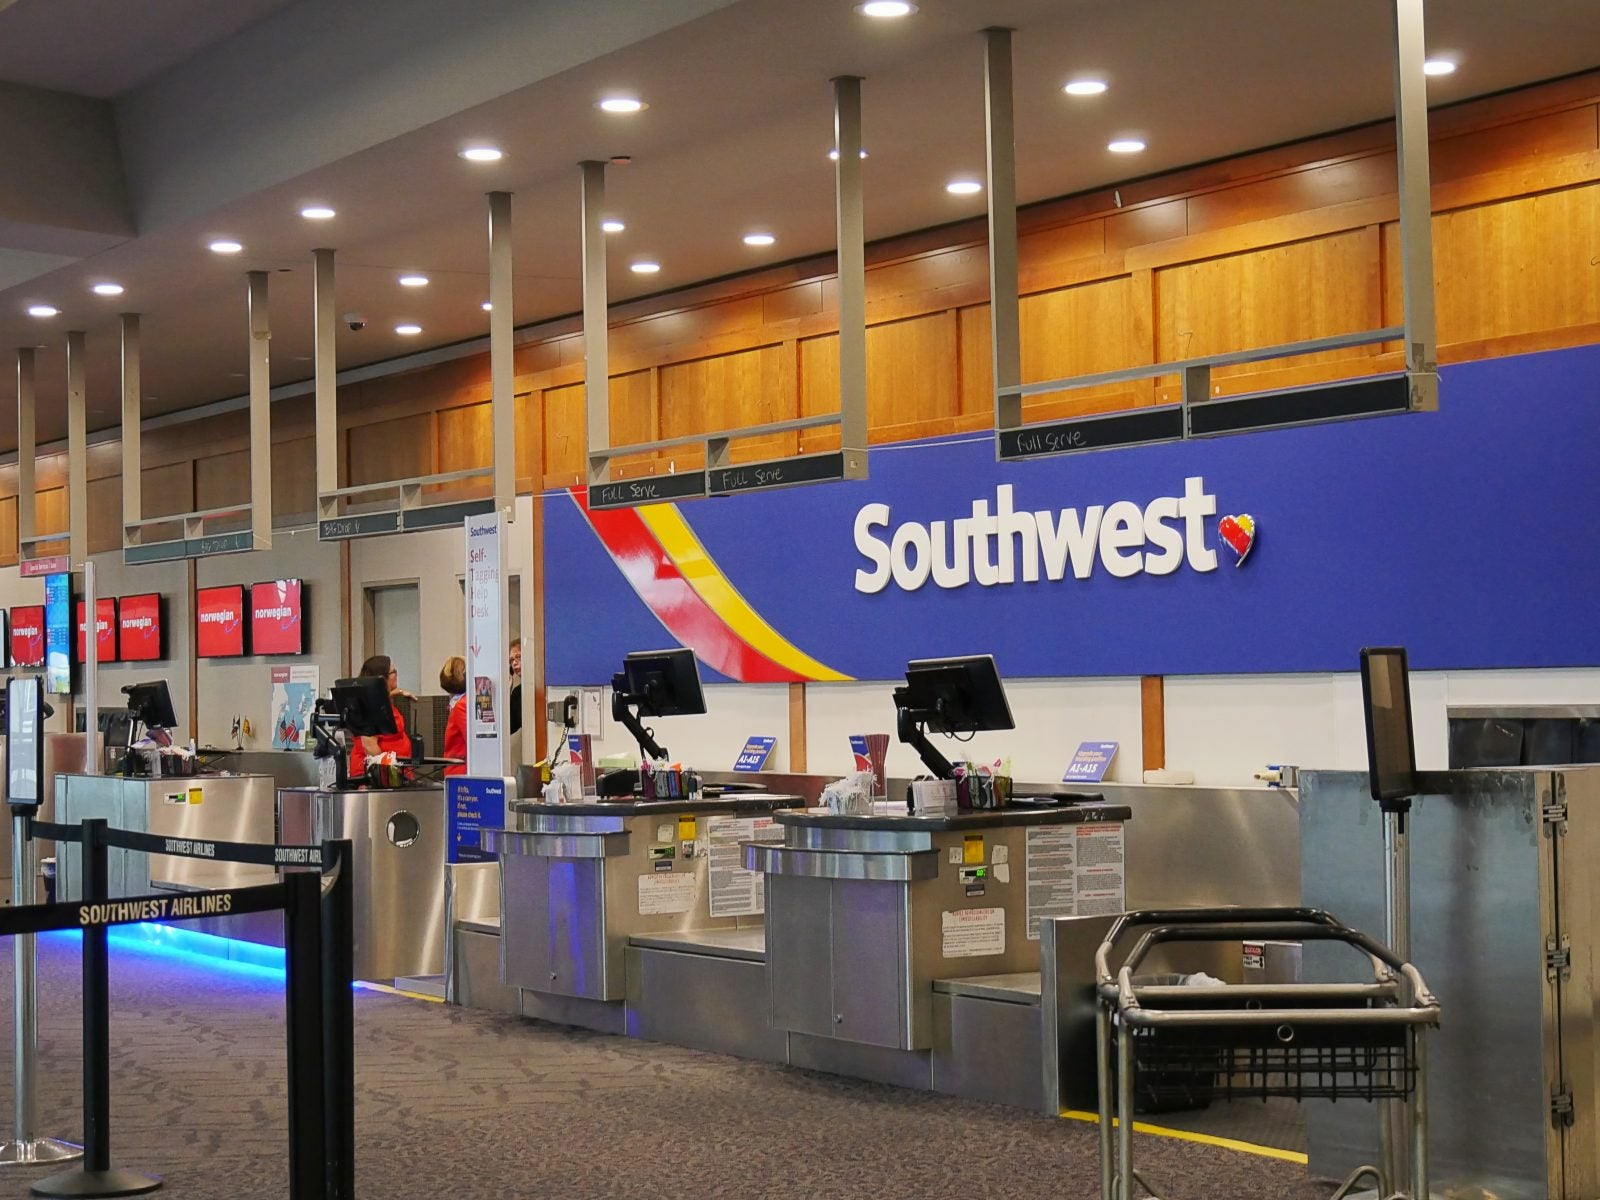 Southwest desk